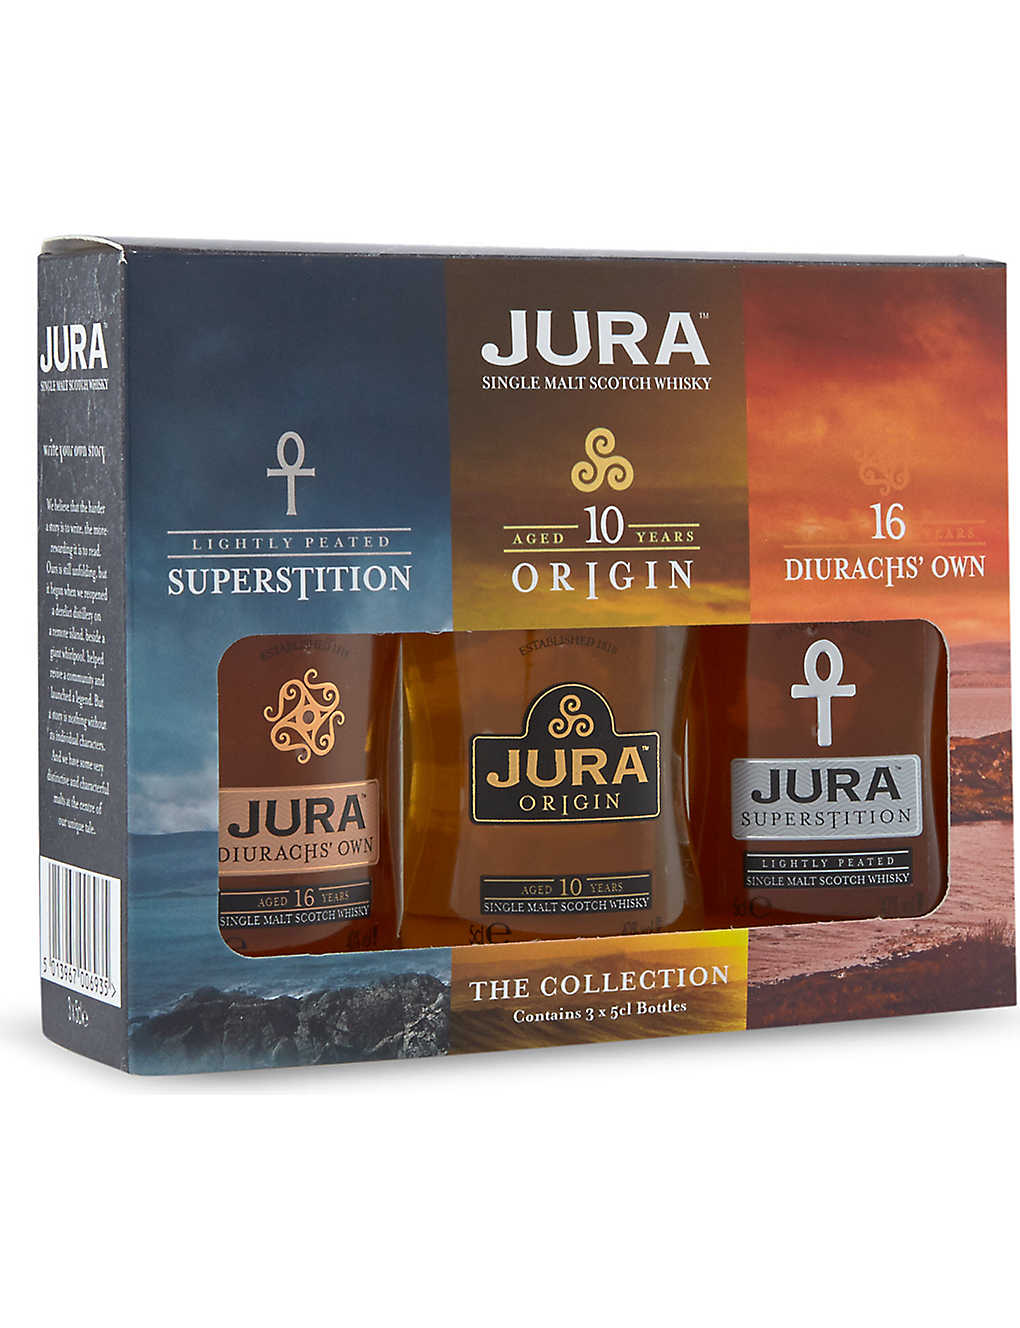 ISLE OF JURA: Miniture gift set 3x50ml